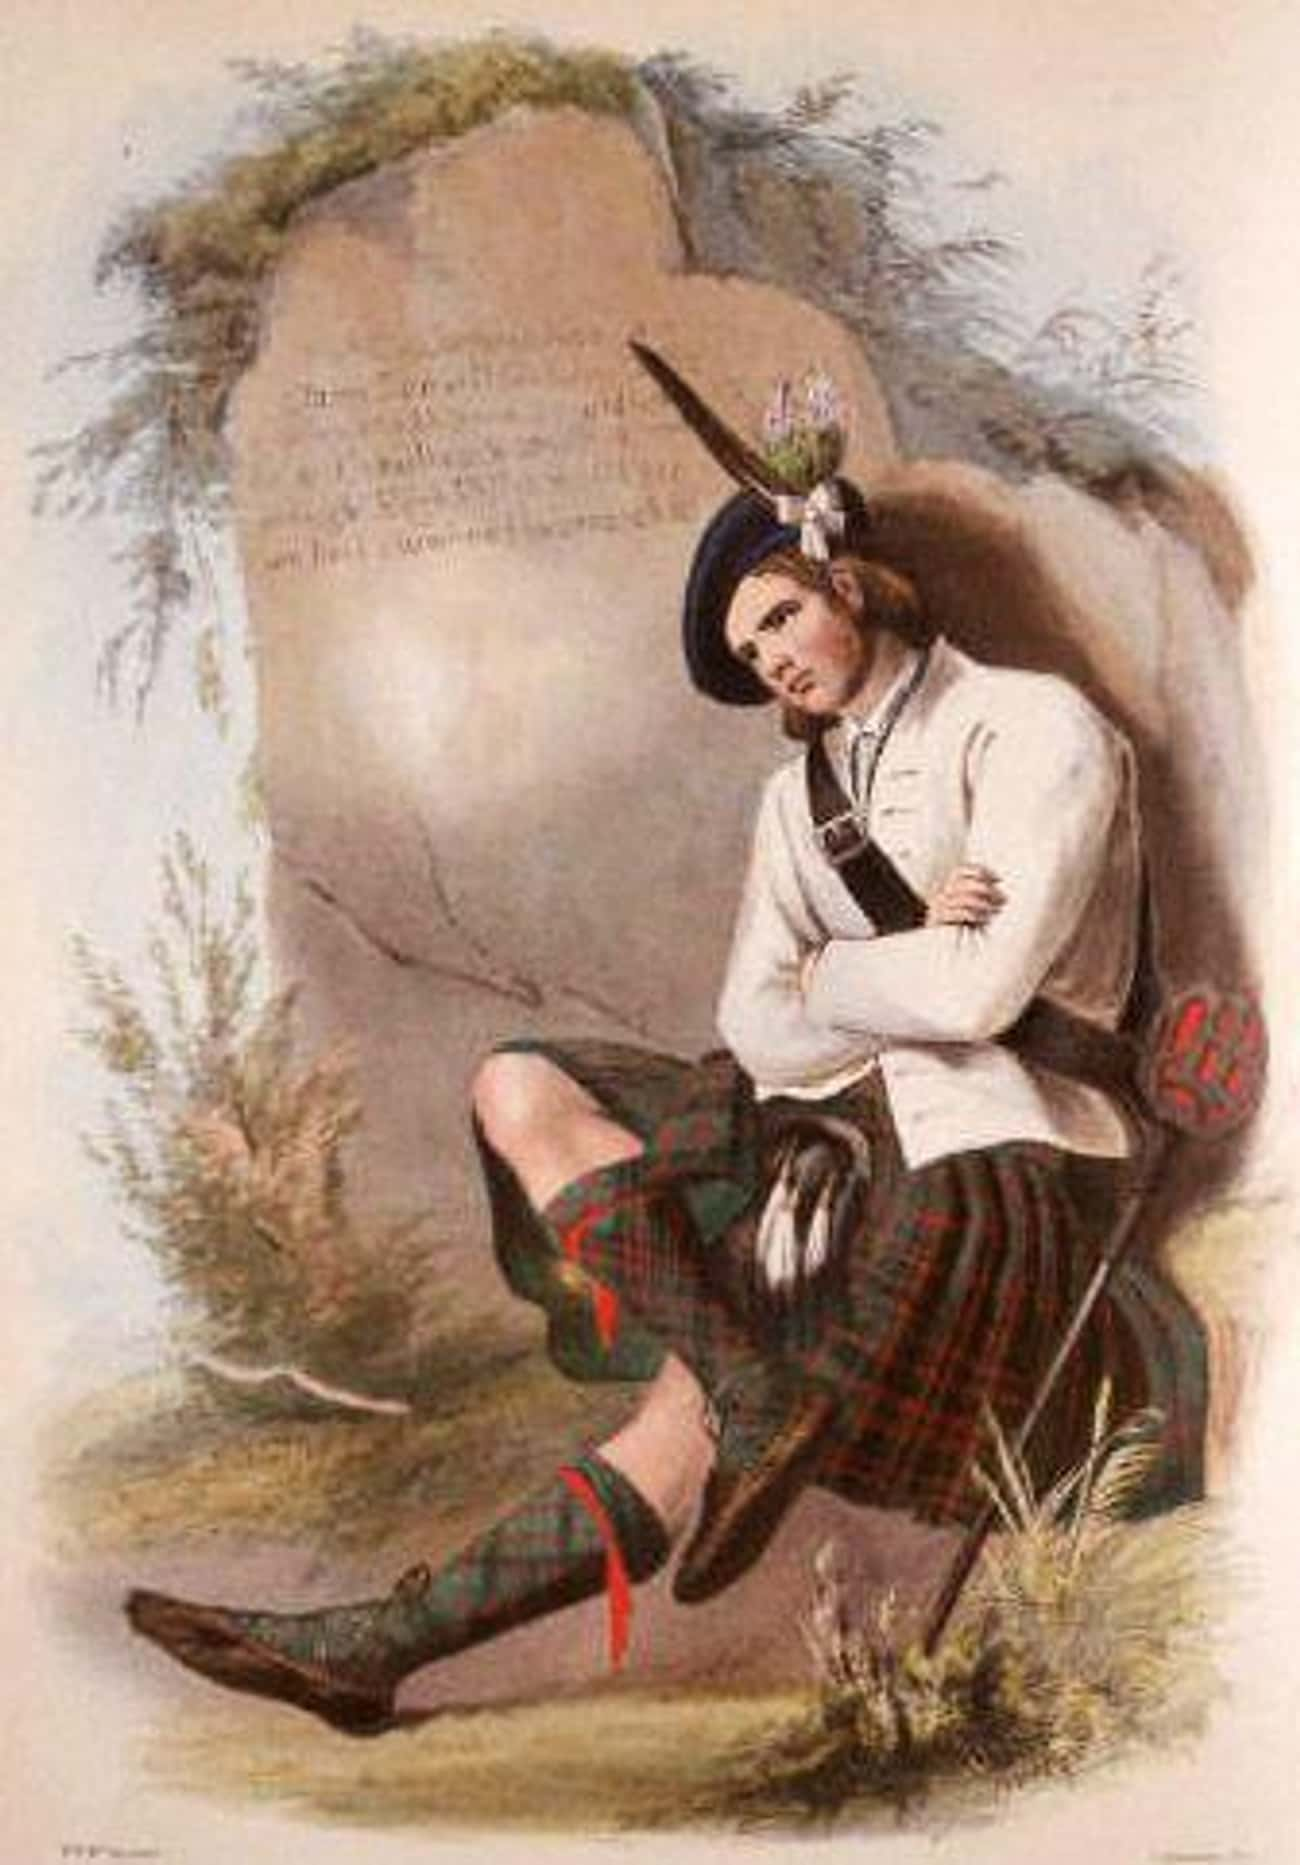 Chief Alastair Maclain Tried To Stop The Massacre But Was Five Days Too Late